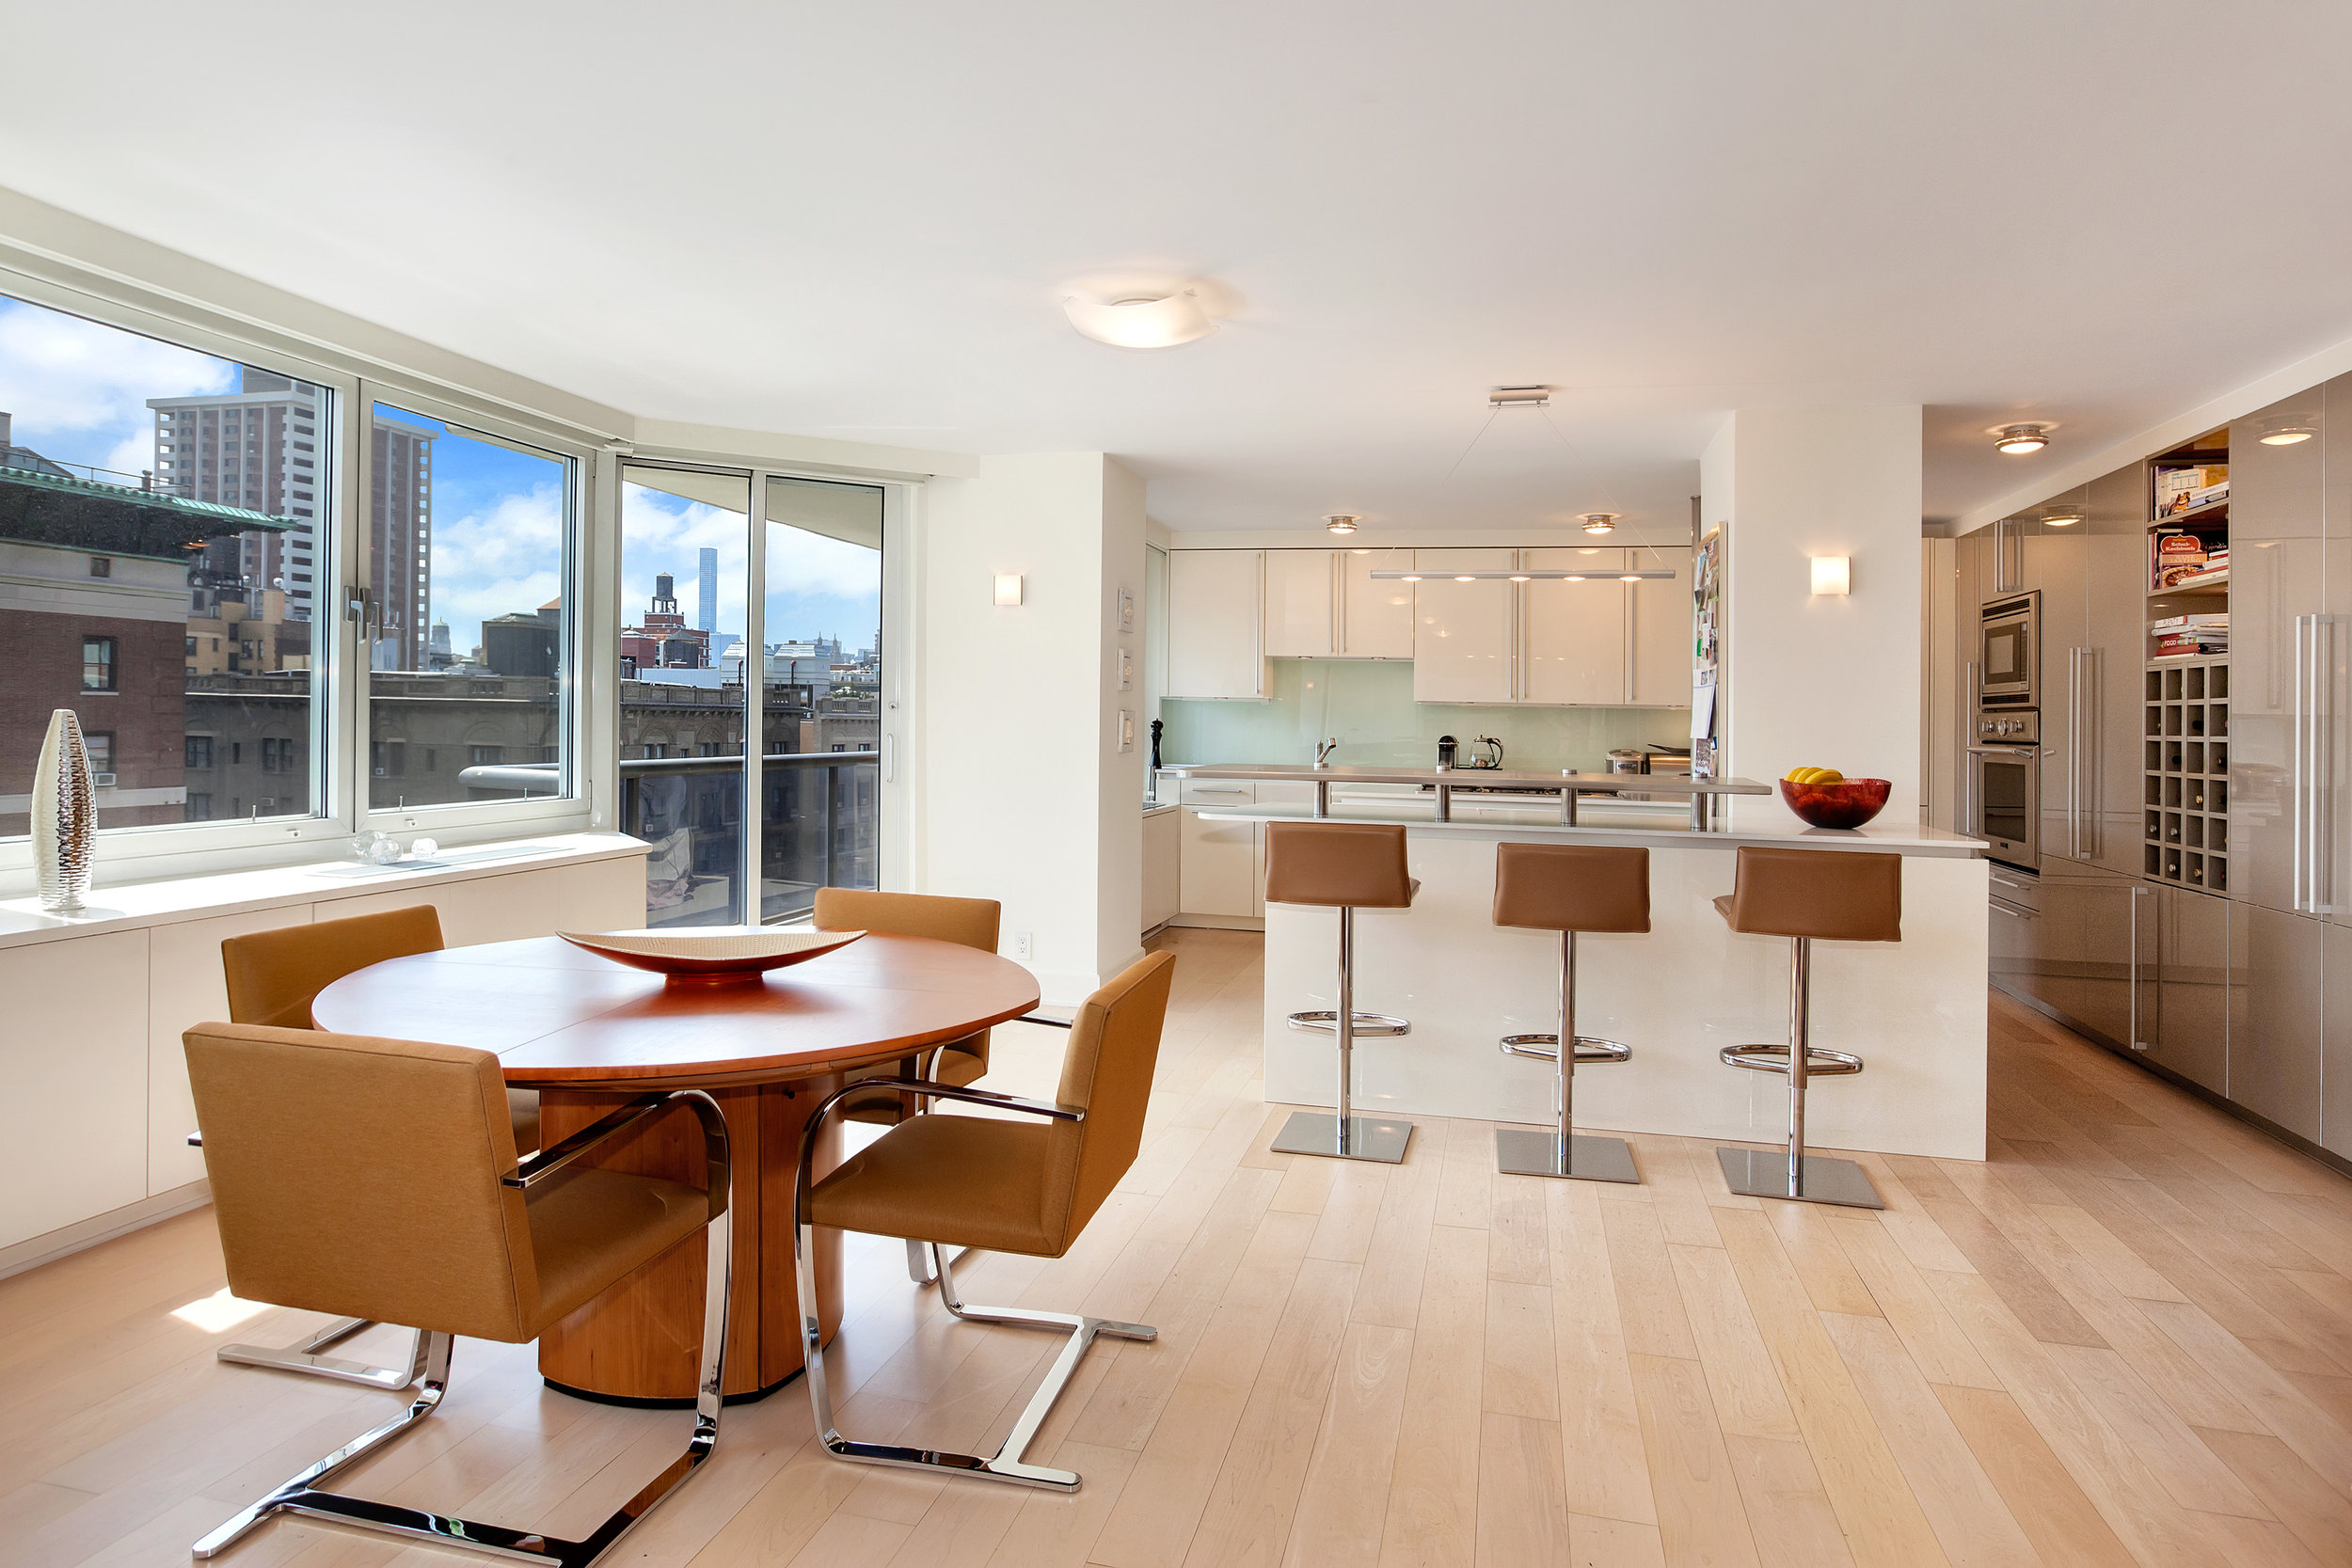 250West90thStreet17K_Dylan_Hildreth-Hoffman_DouglasElliman_Photography_28829050_high_res.jpg